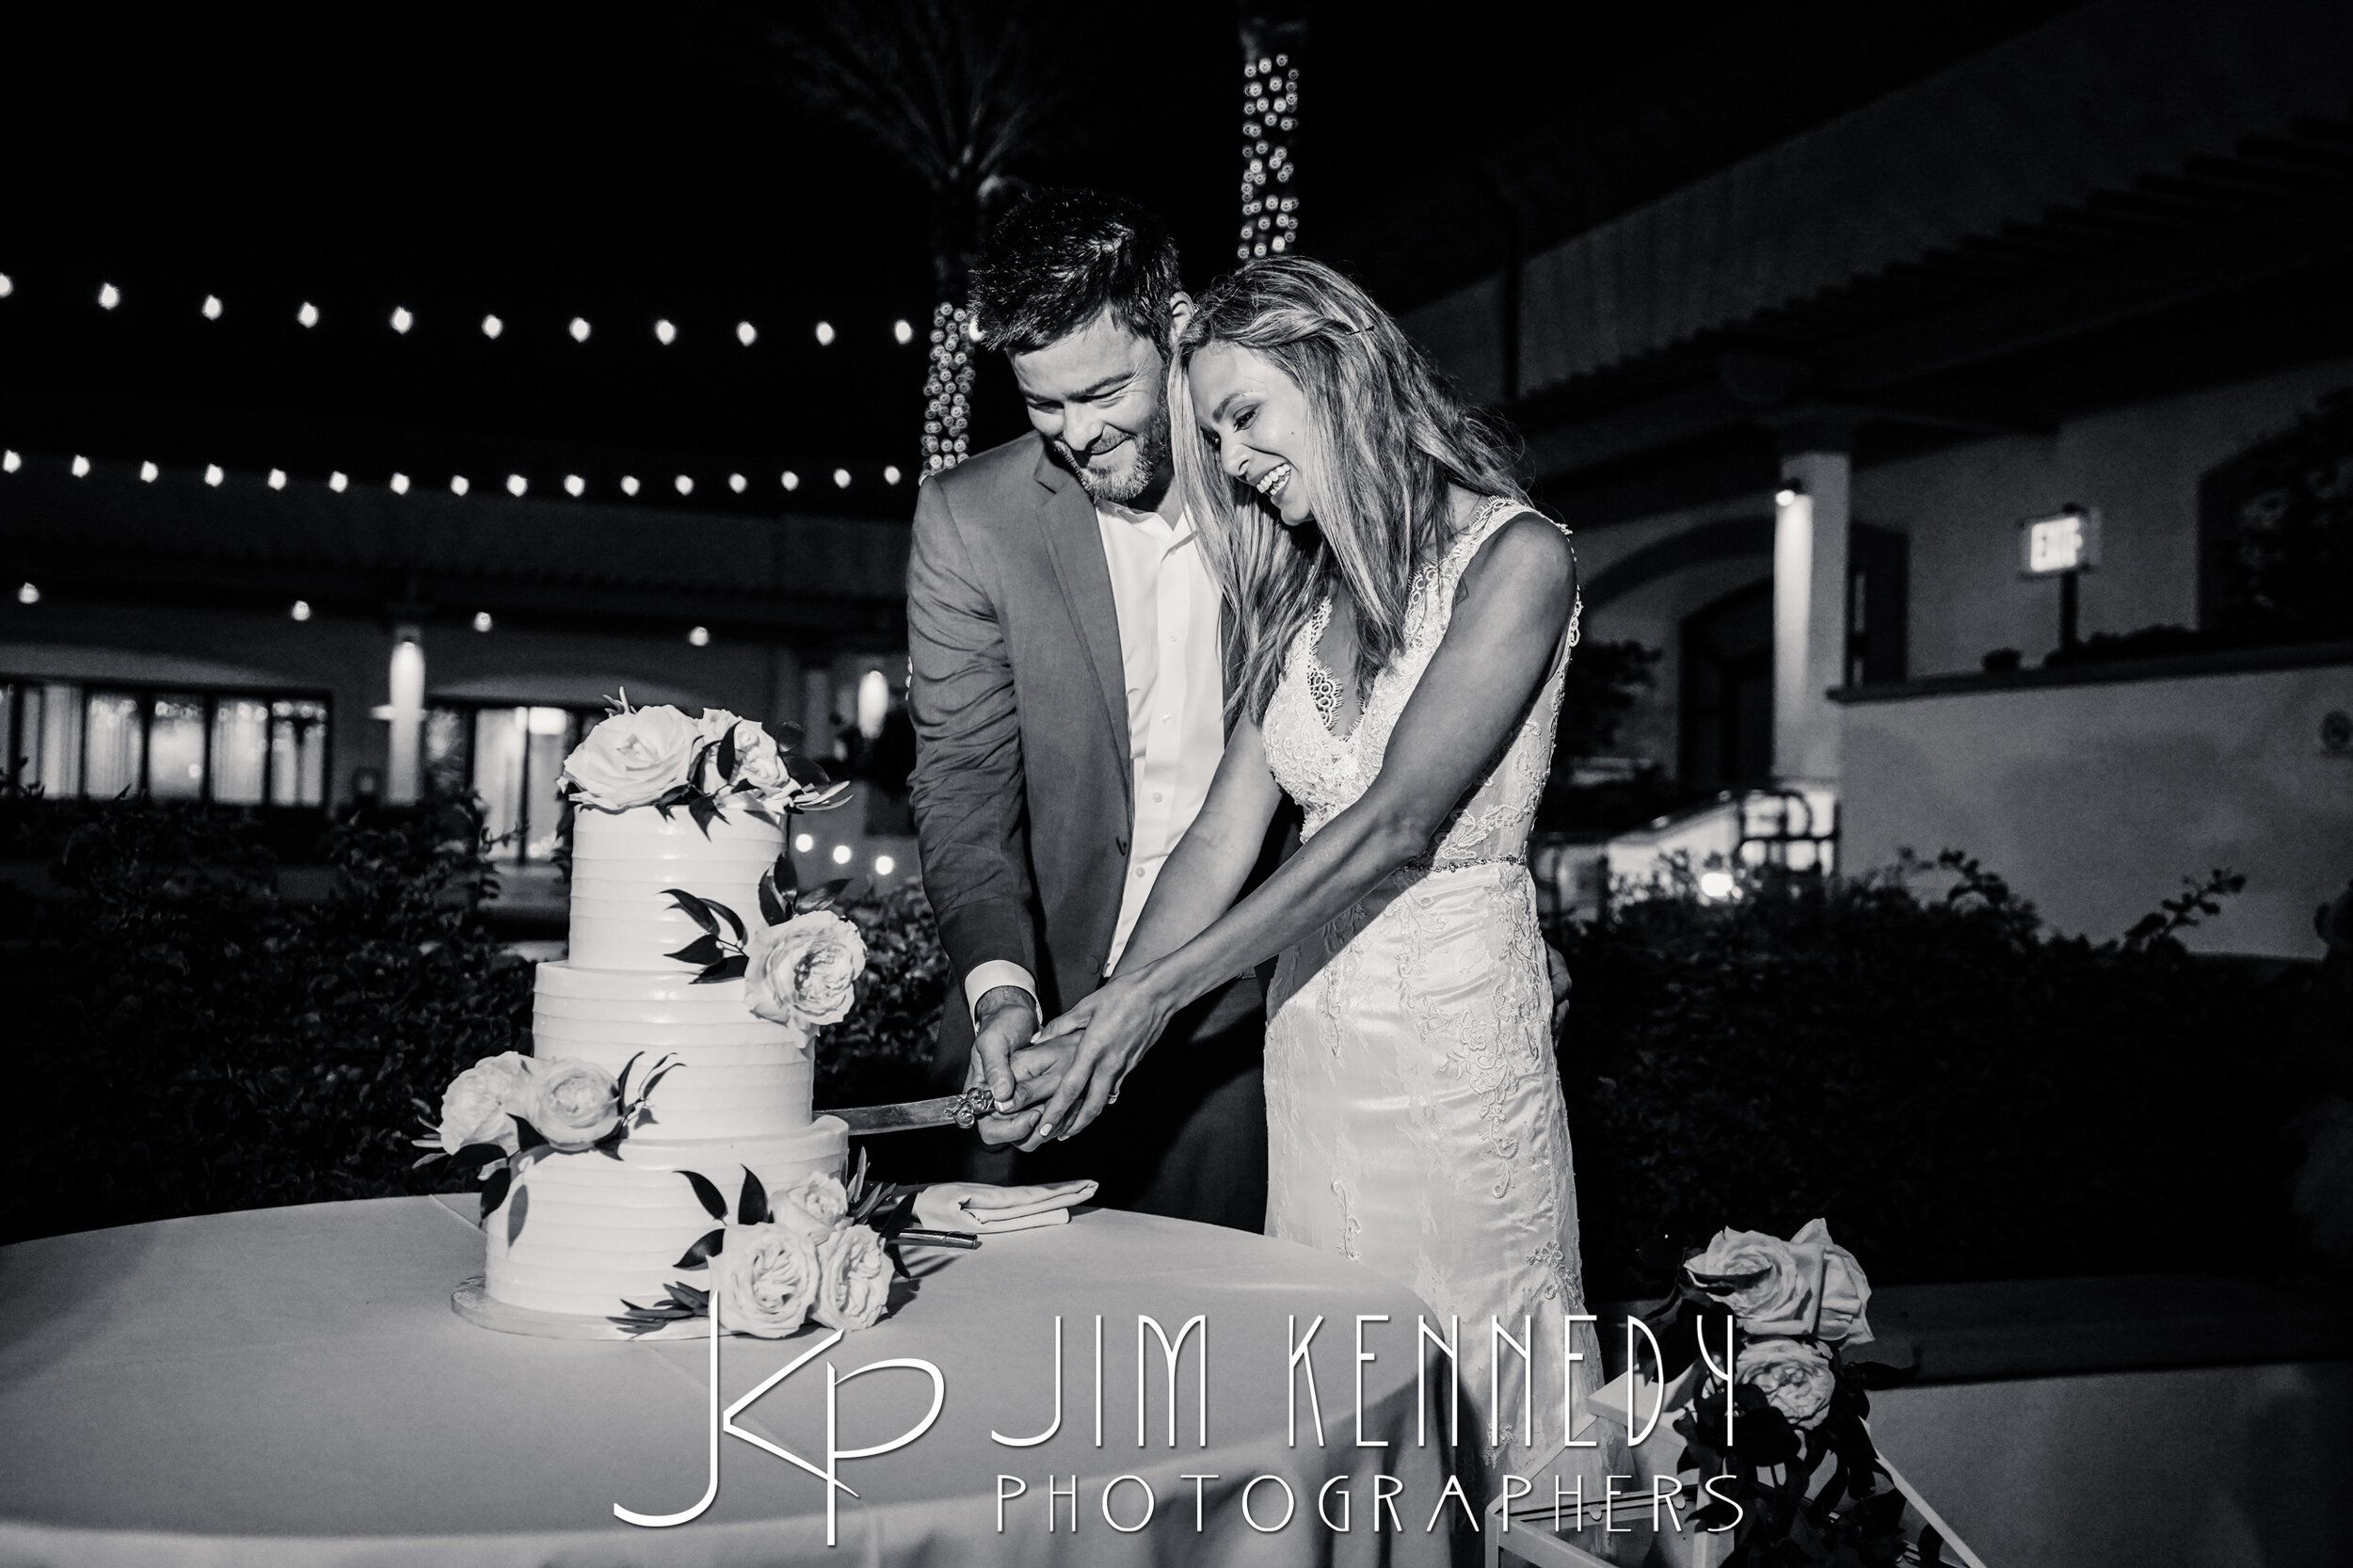 waterfront-hilton-wedding-jim-kennedy-photographers_0206.JPG